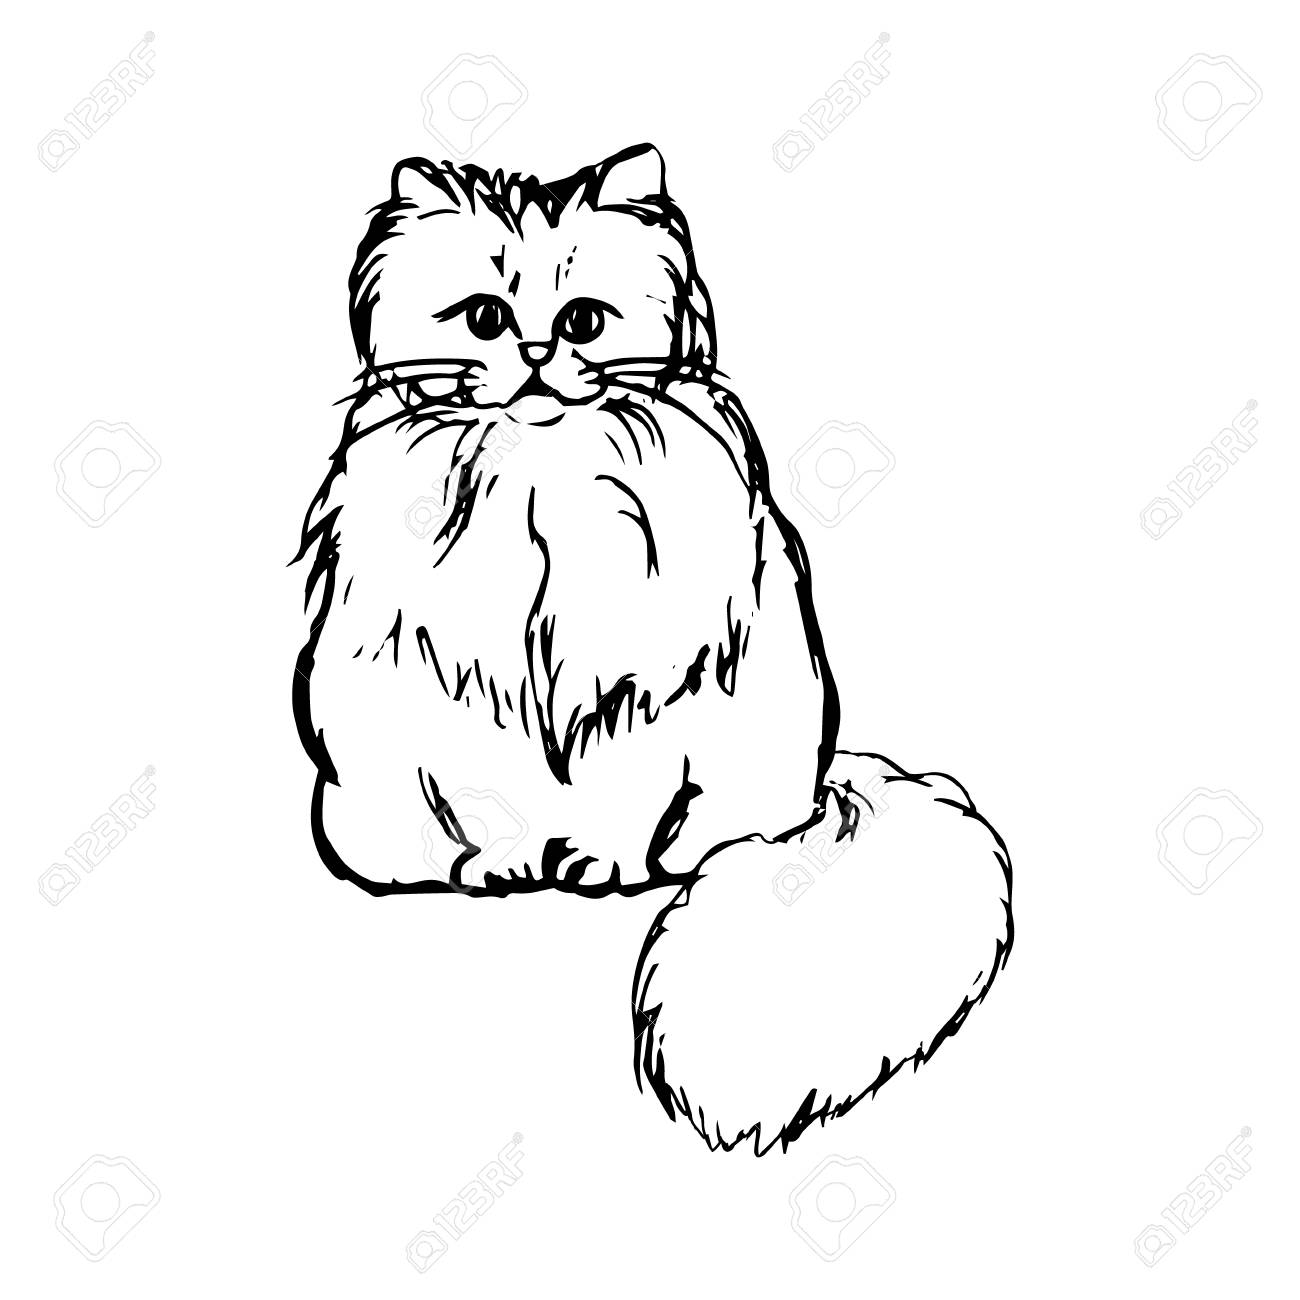 1300x1300 Abstract Drawing Of A Fluffy Cat, Graphic Vector Illustration